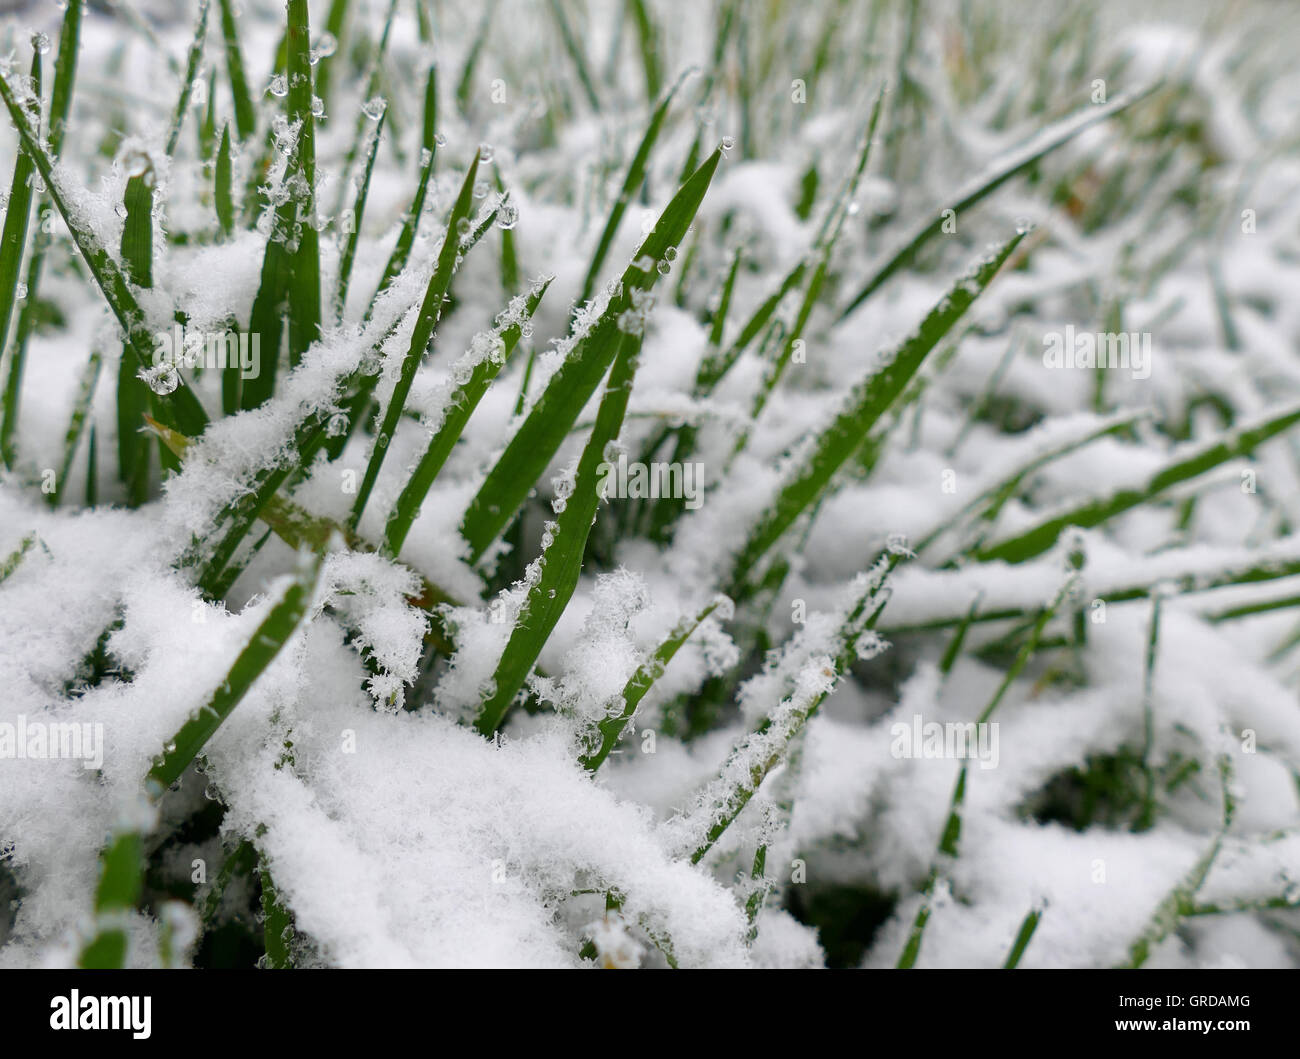 Blades Of Grass Looking Out Of The Snow - Stock Image